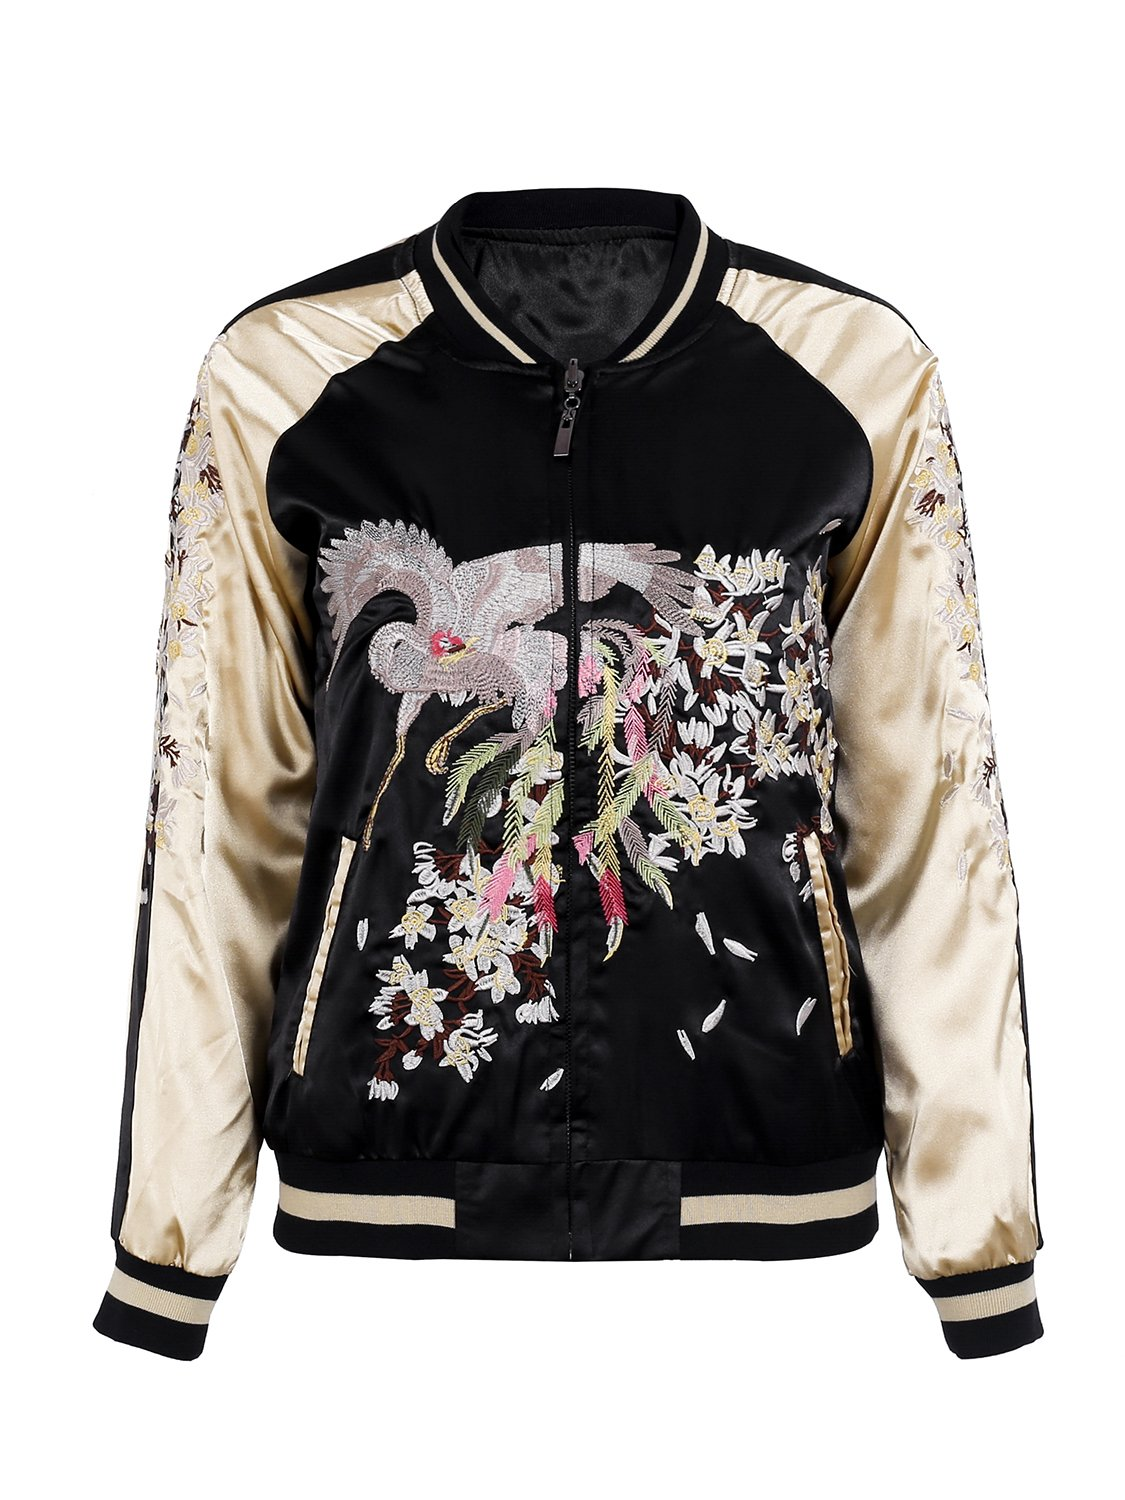 Simplee Women's Casual Floral Embroidery Reversible Satin Bomber Jacket OW506